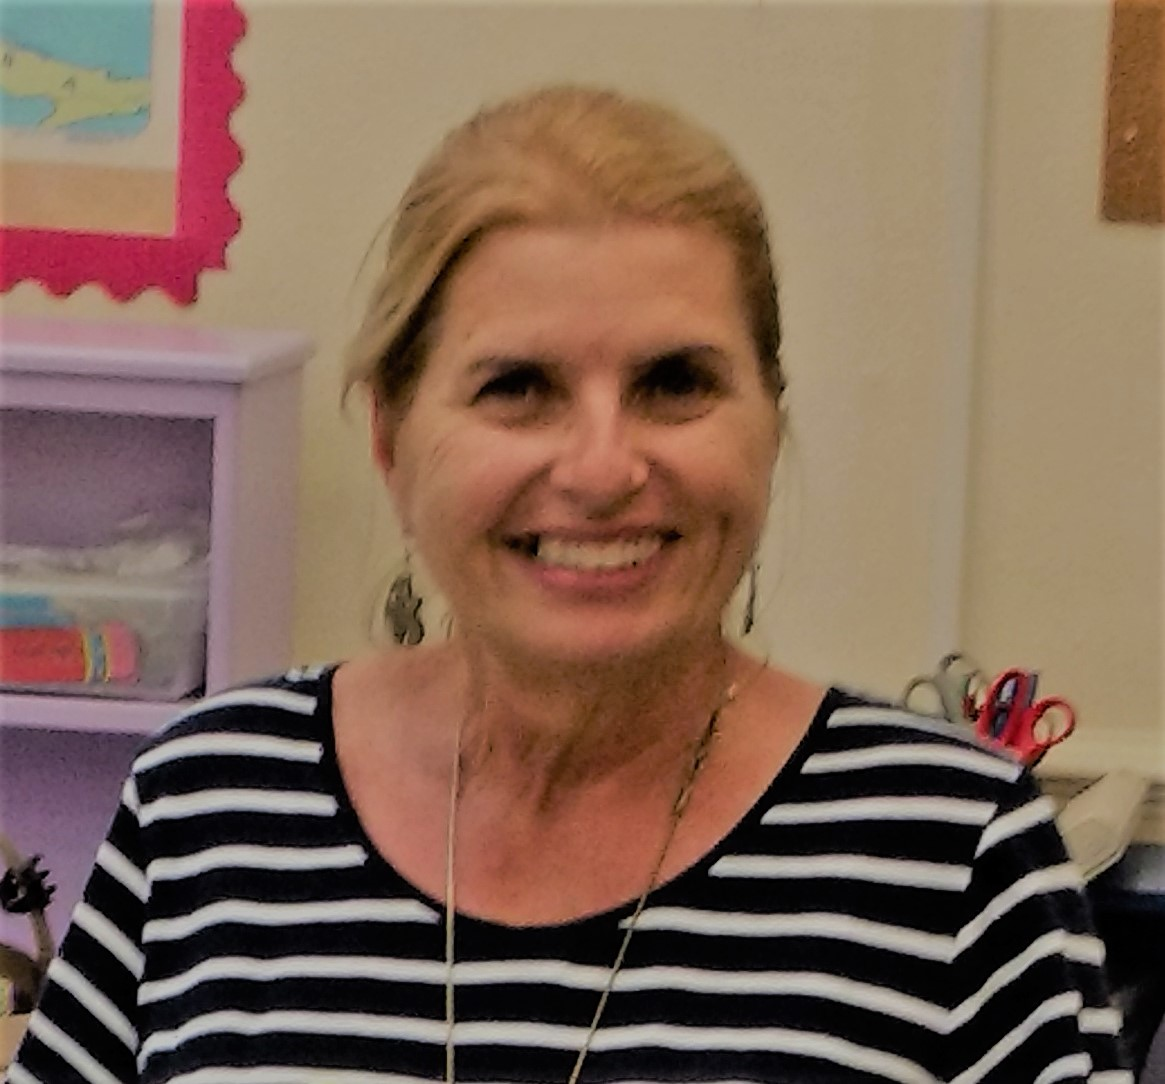 AUG 9 CKS Lenita Cato 1st Grade Teacher